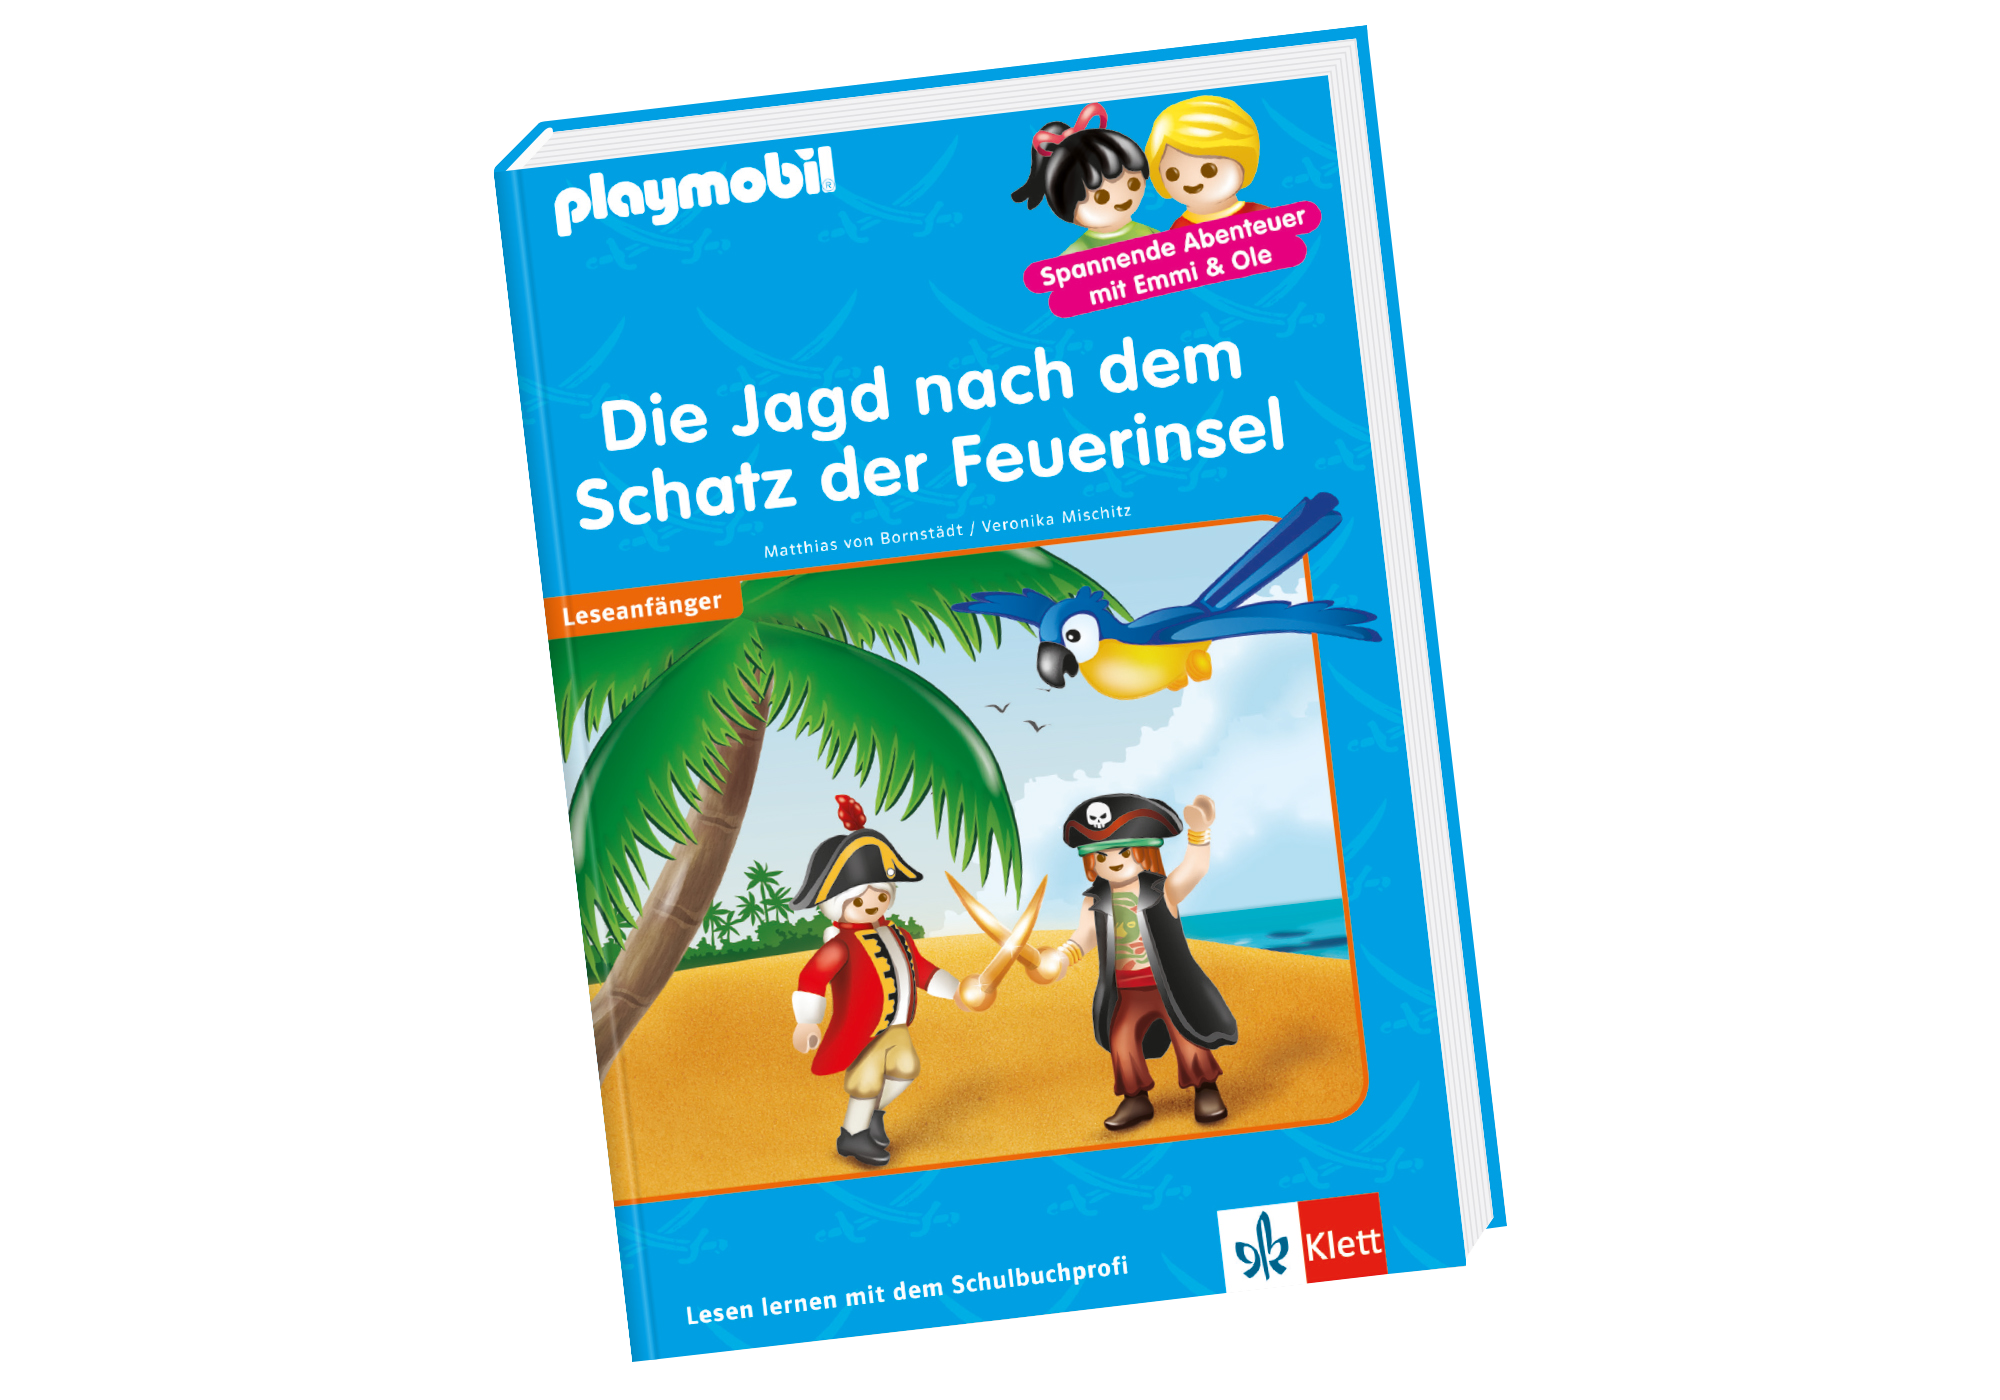 http://media.playmobil.com/i/playmobil/80700_product_detail